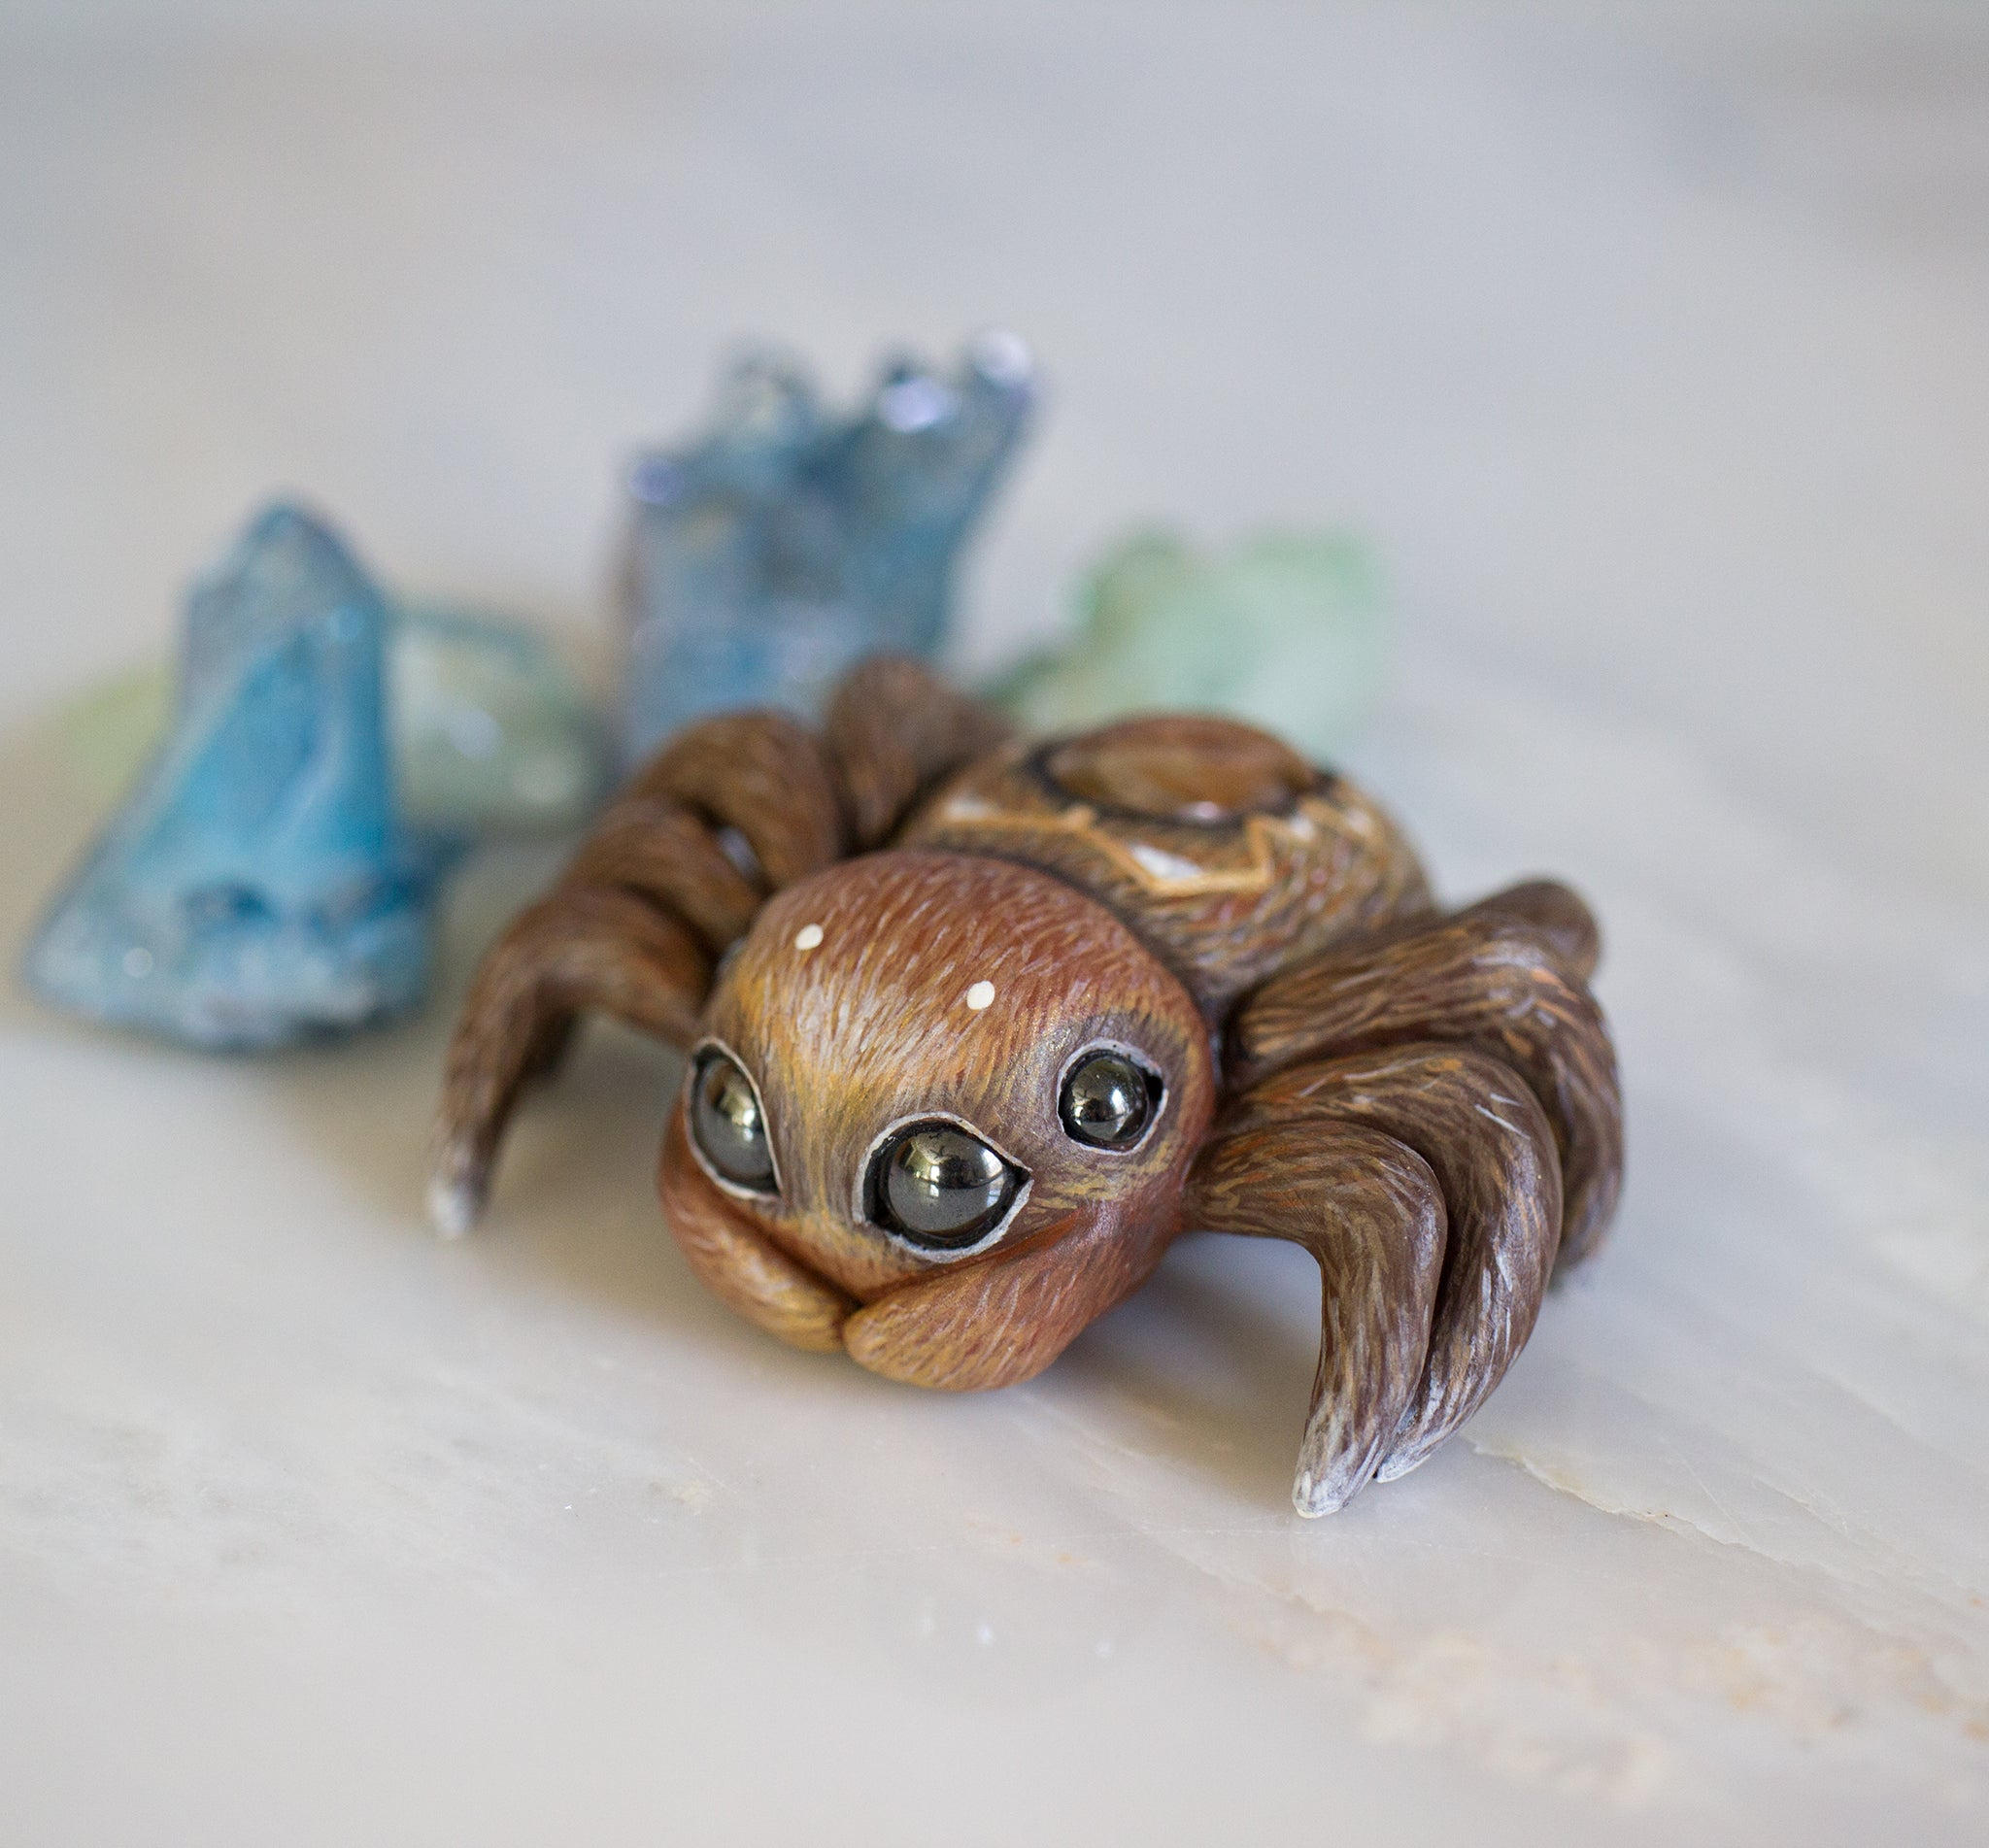 Sunstone Spider Figurine